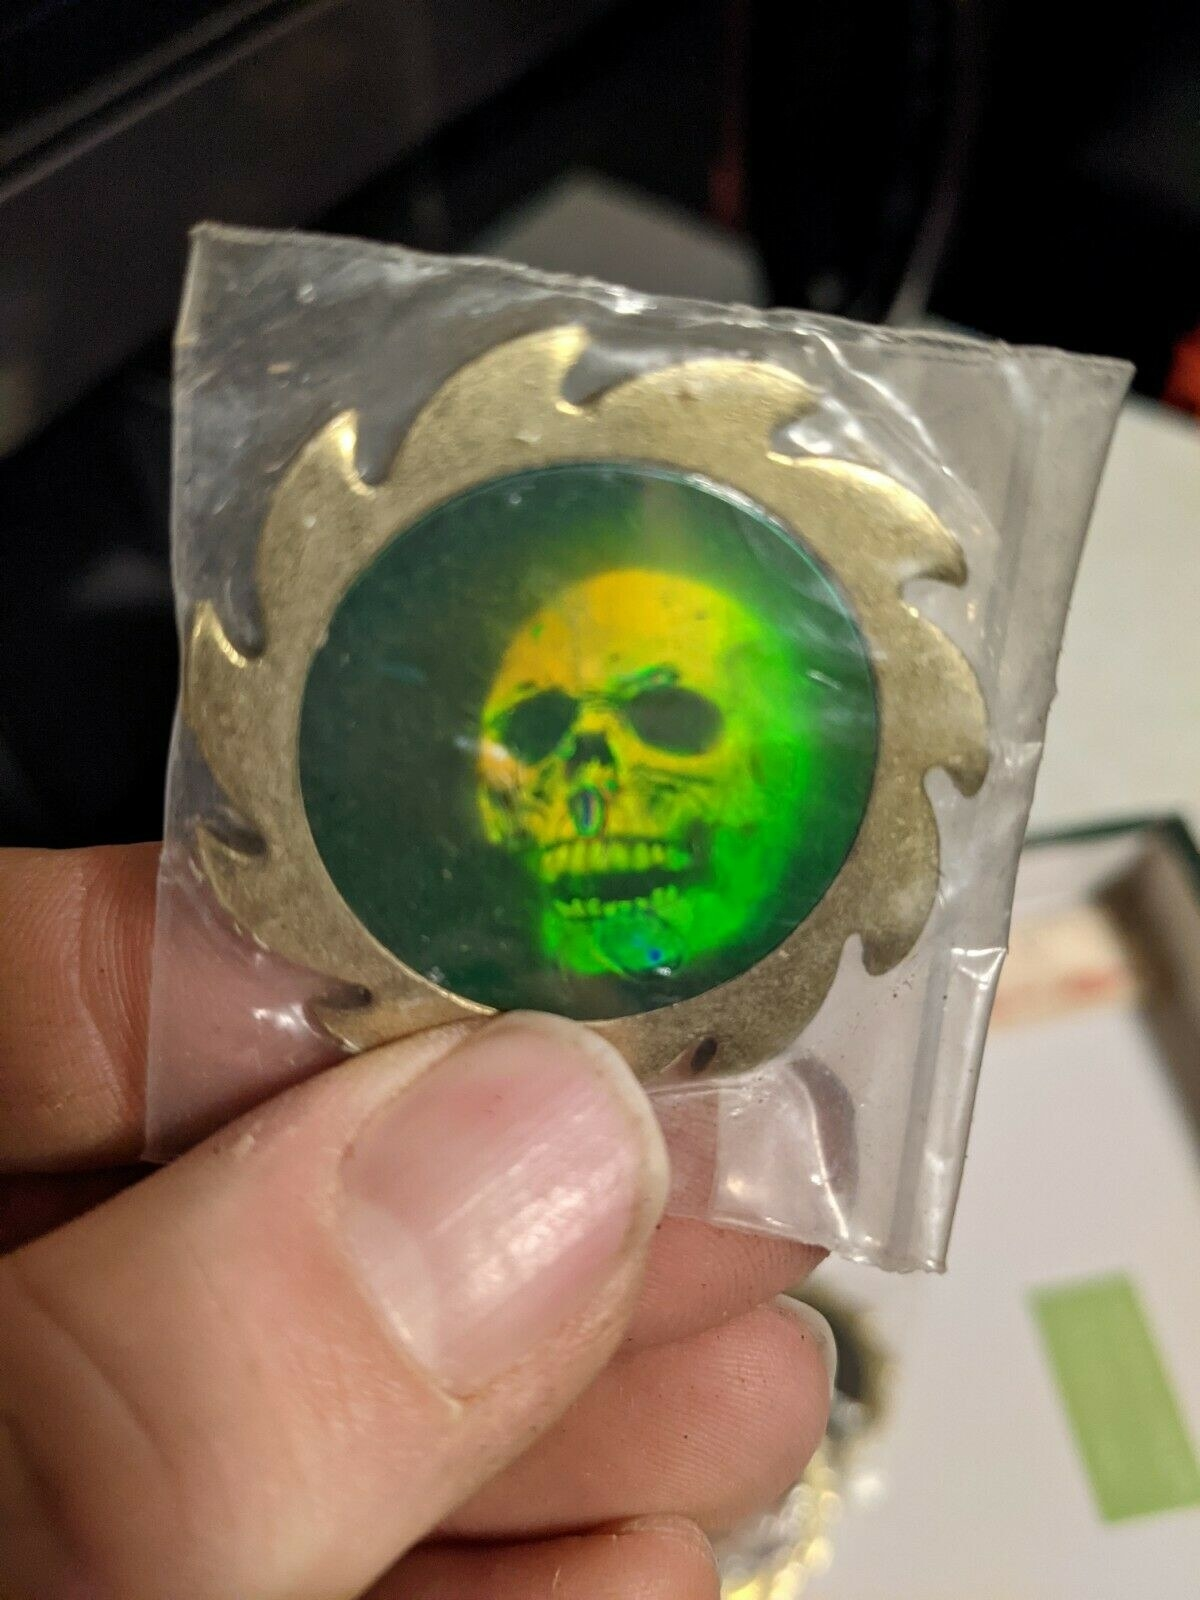 An old pog slammer with a skull on it and serrated edges like a saw